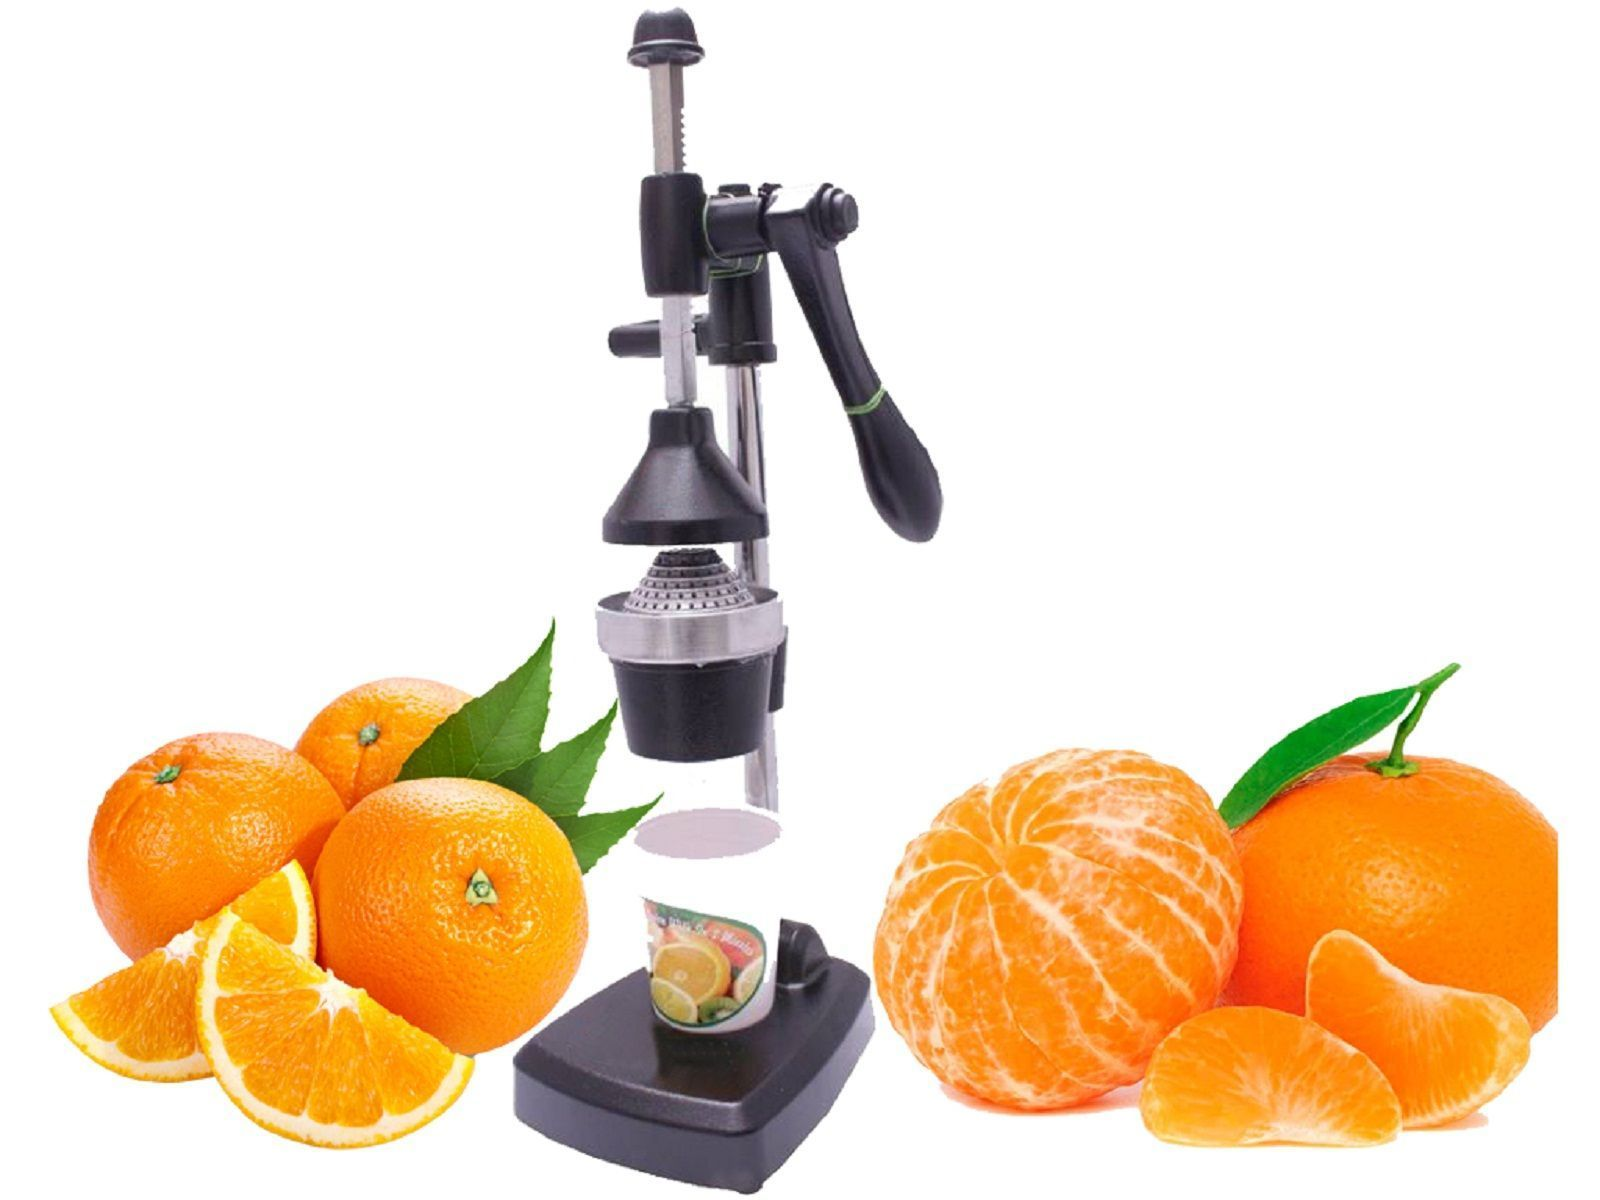 Kuber Industries™ Hand Pressure Juicer/Fruits Juicer/Vegetable Juicer/Manual Hand Juicer (HPTJ10)